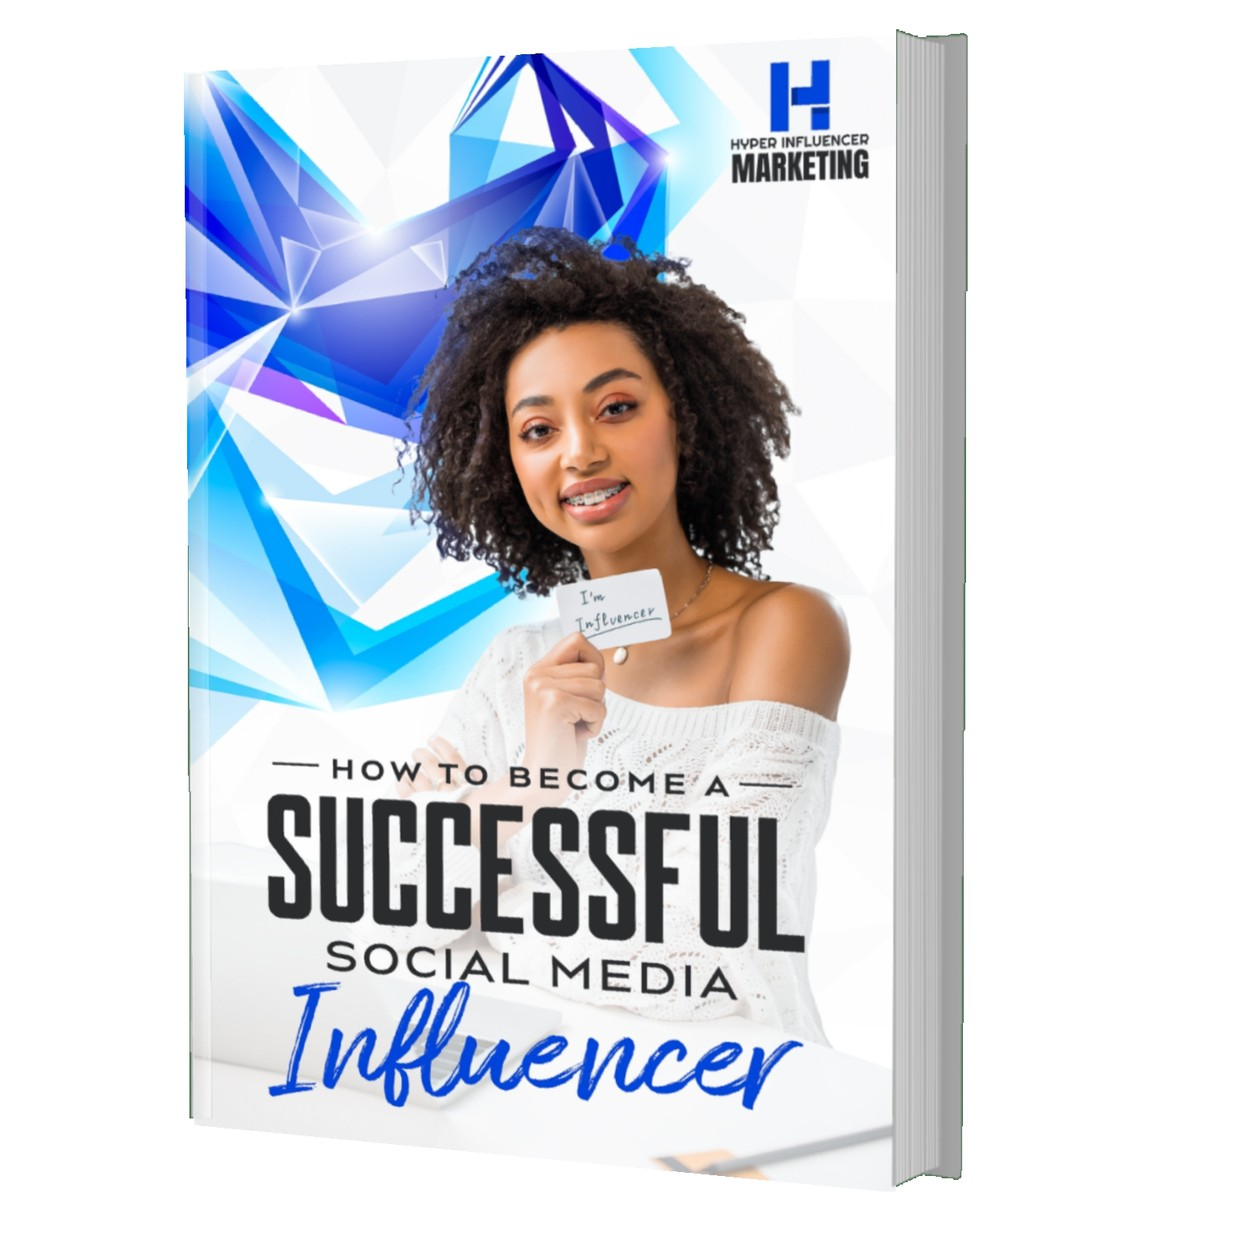 Hyper Influencer Marketing - Strtmvin